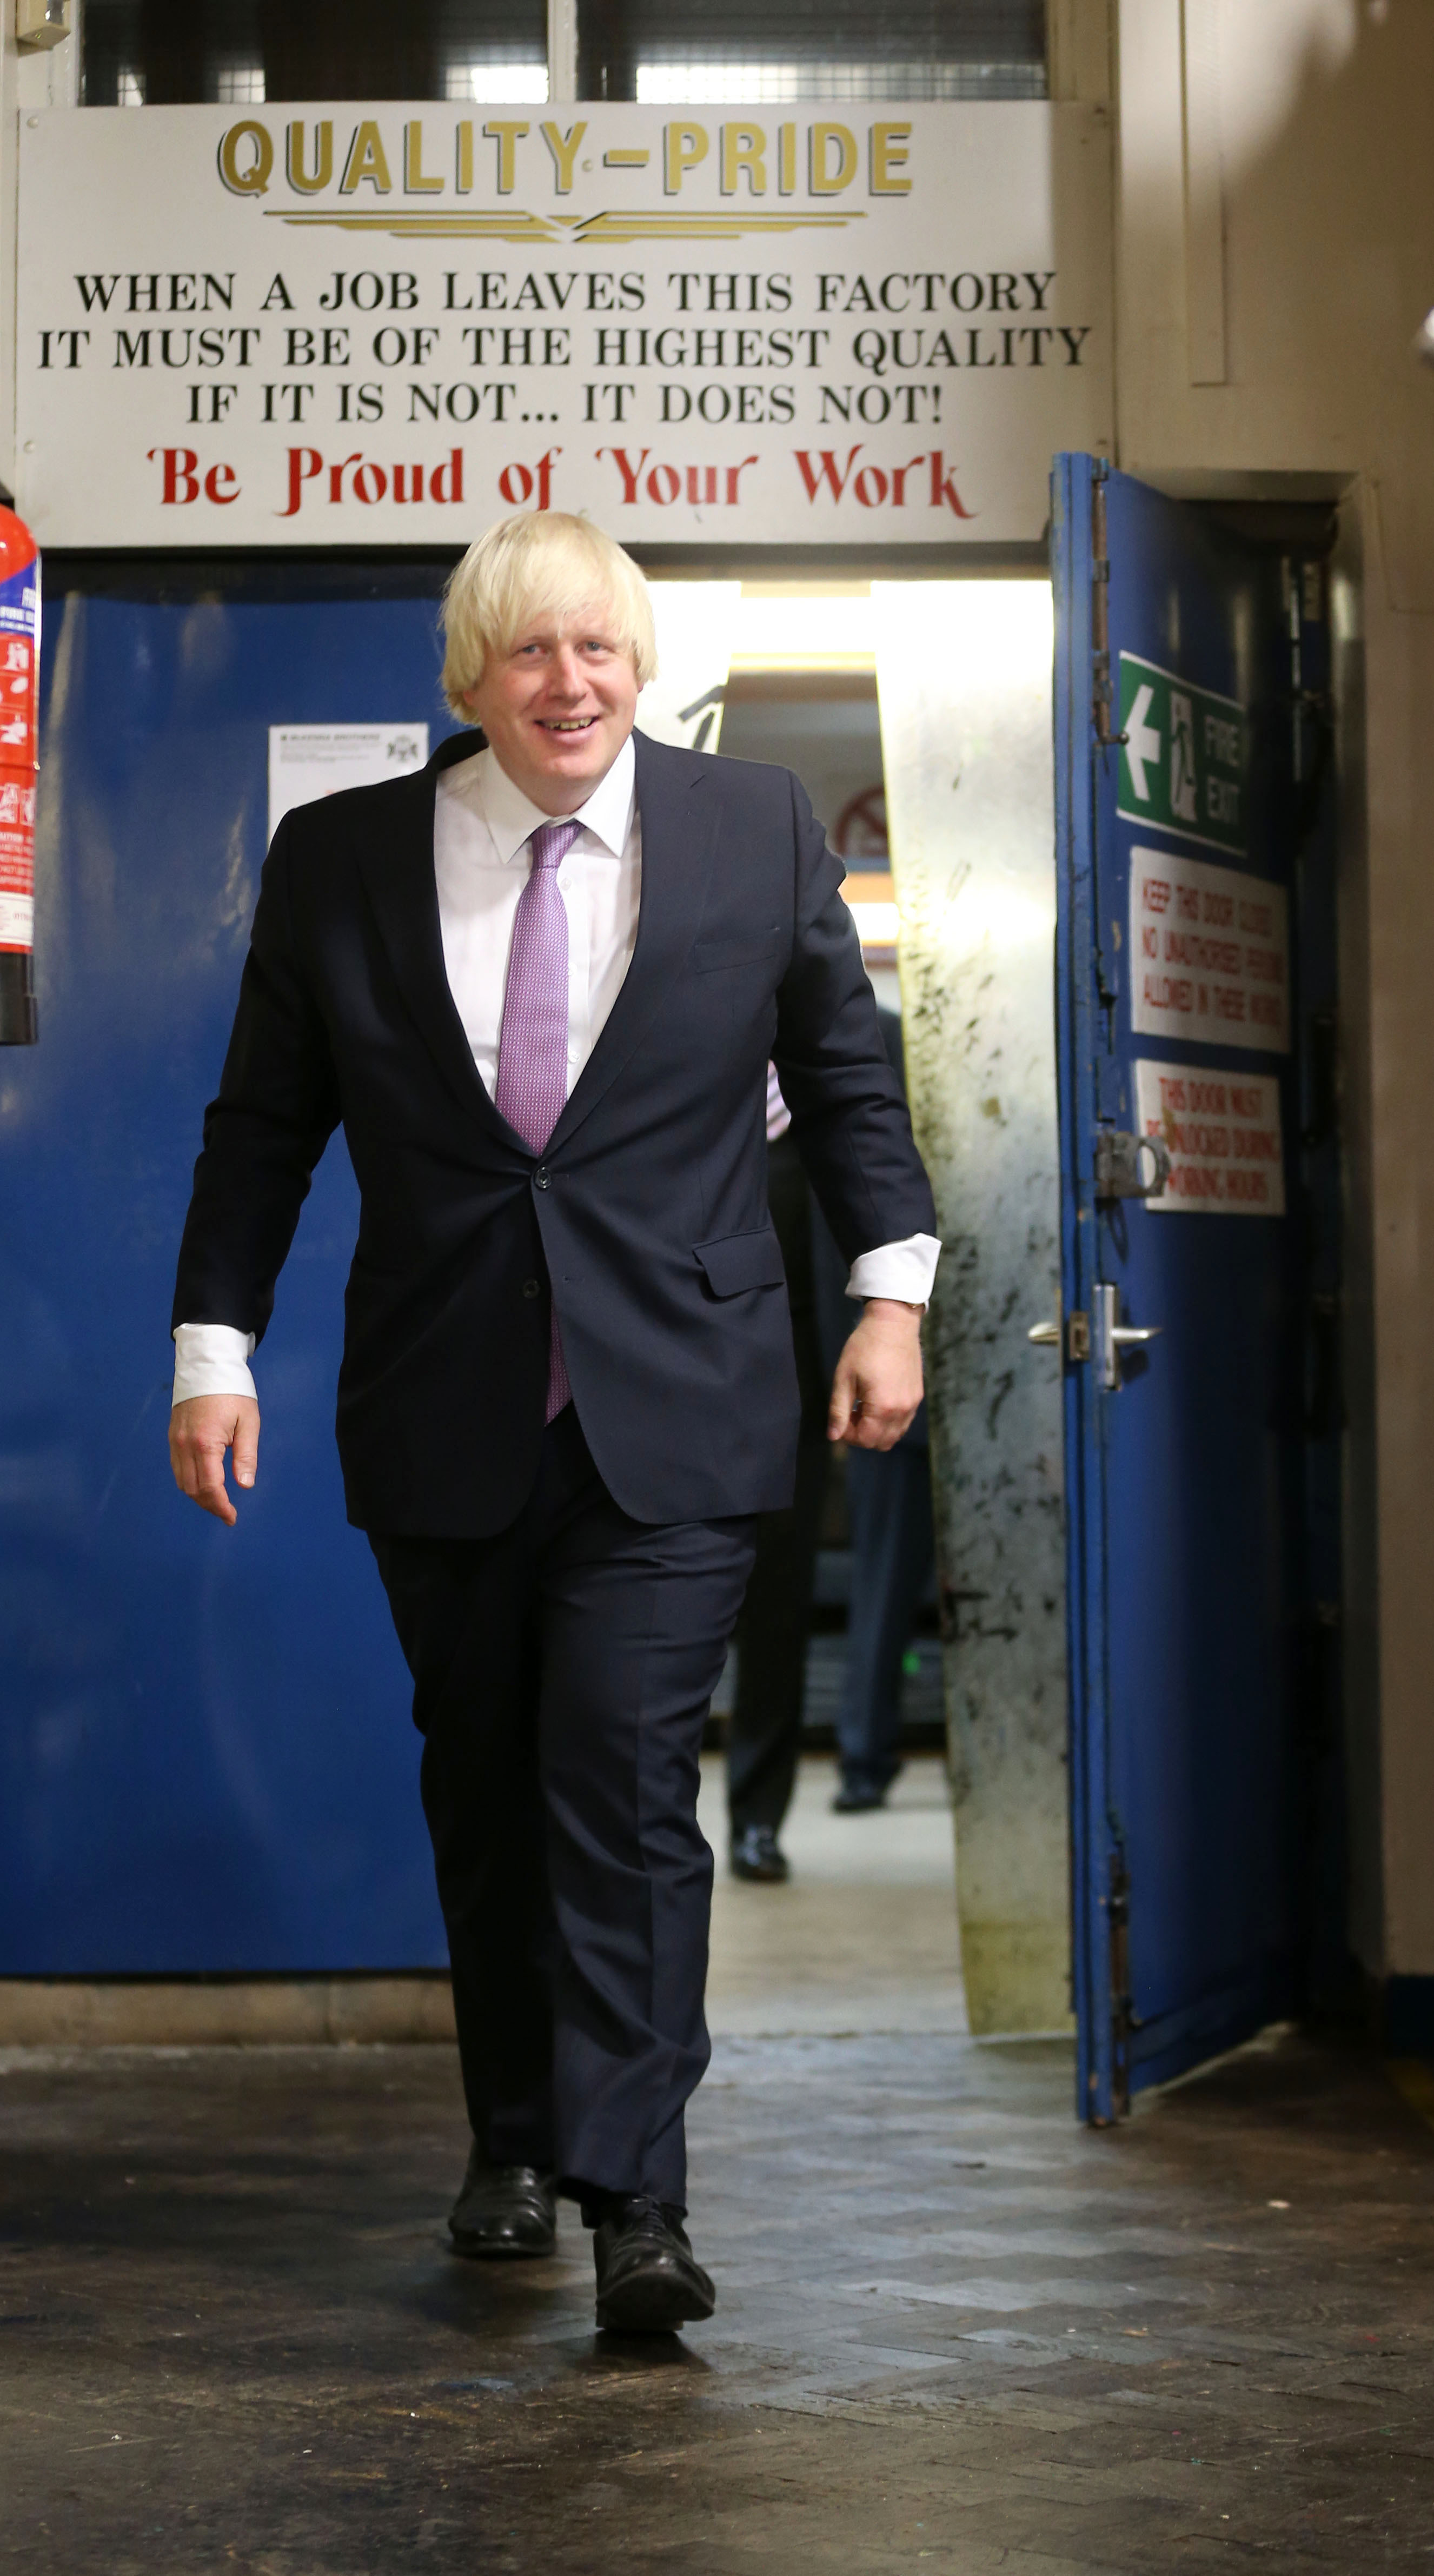 Mayor of London Boris Johnson visits McKenna Bothers makers of destination boards in Middleton during the second day of the Conservative Party Conference in Manchester.